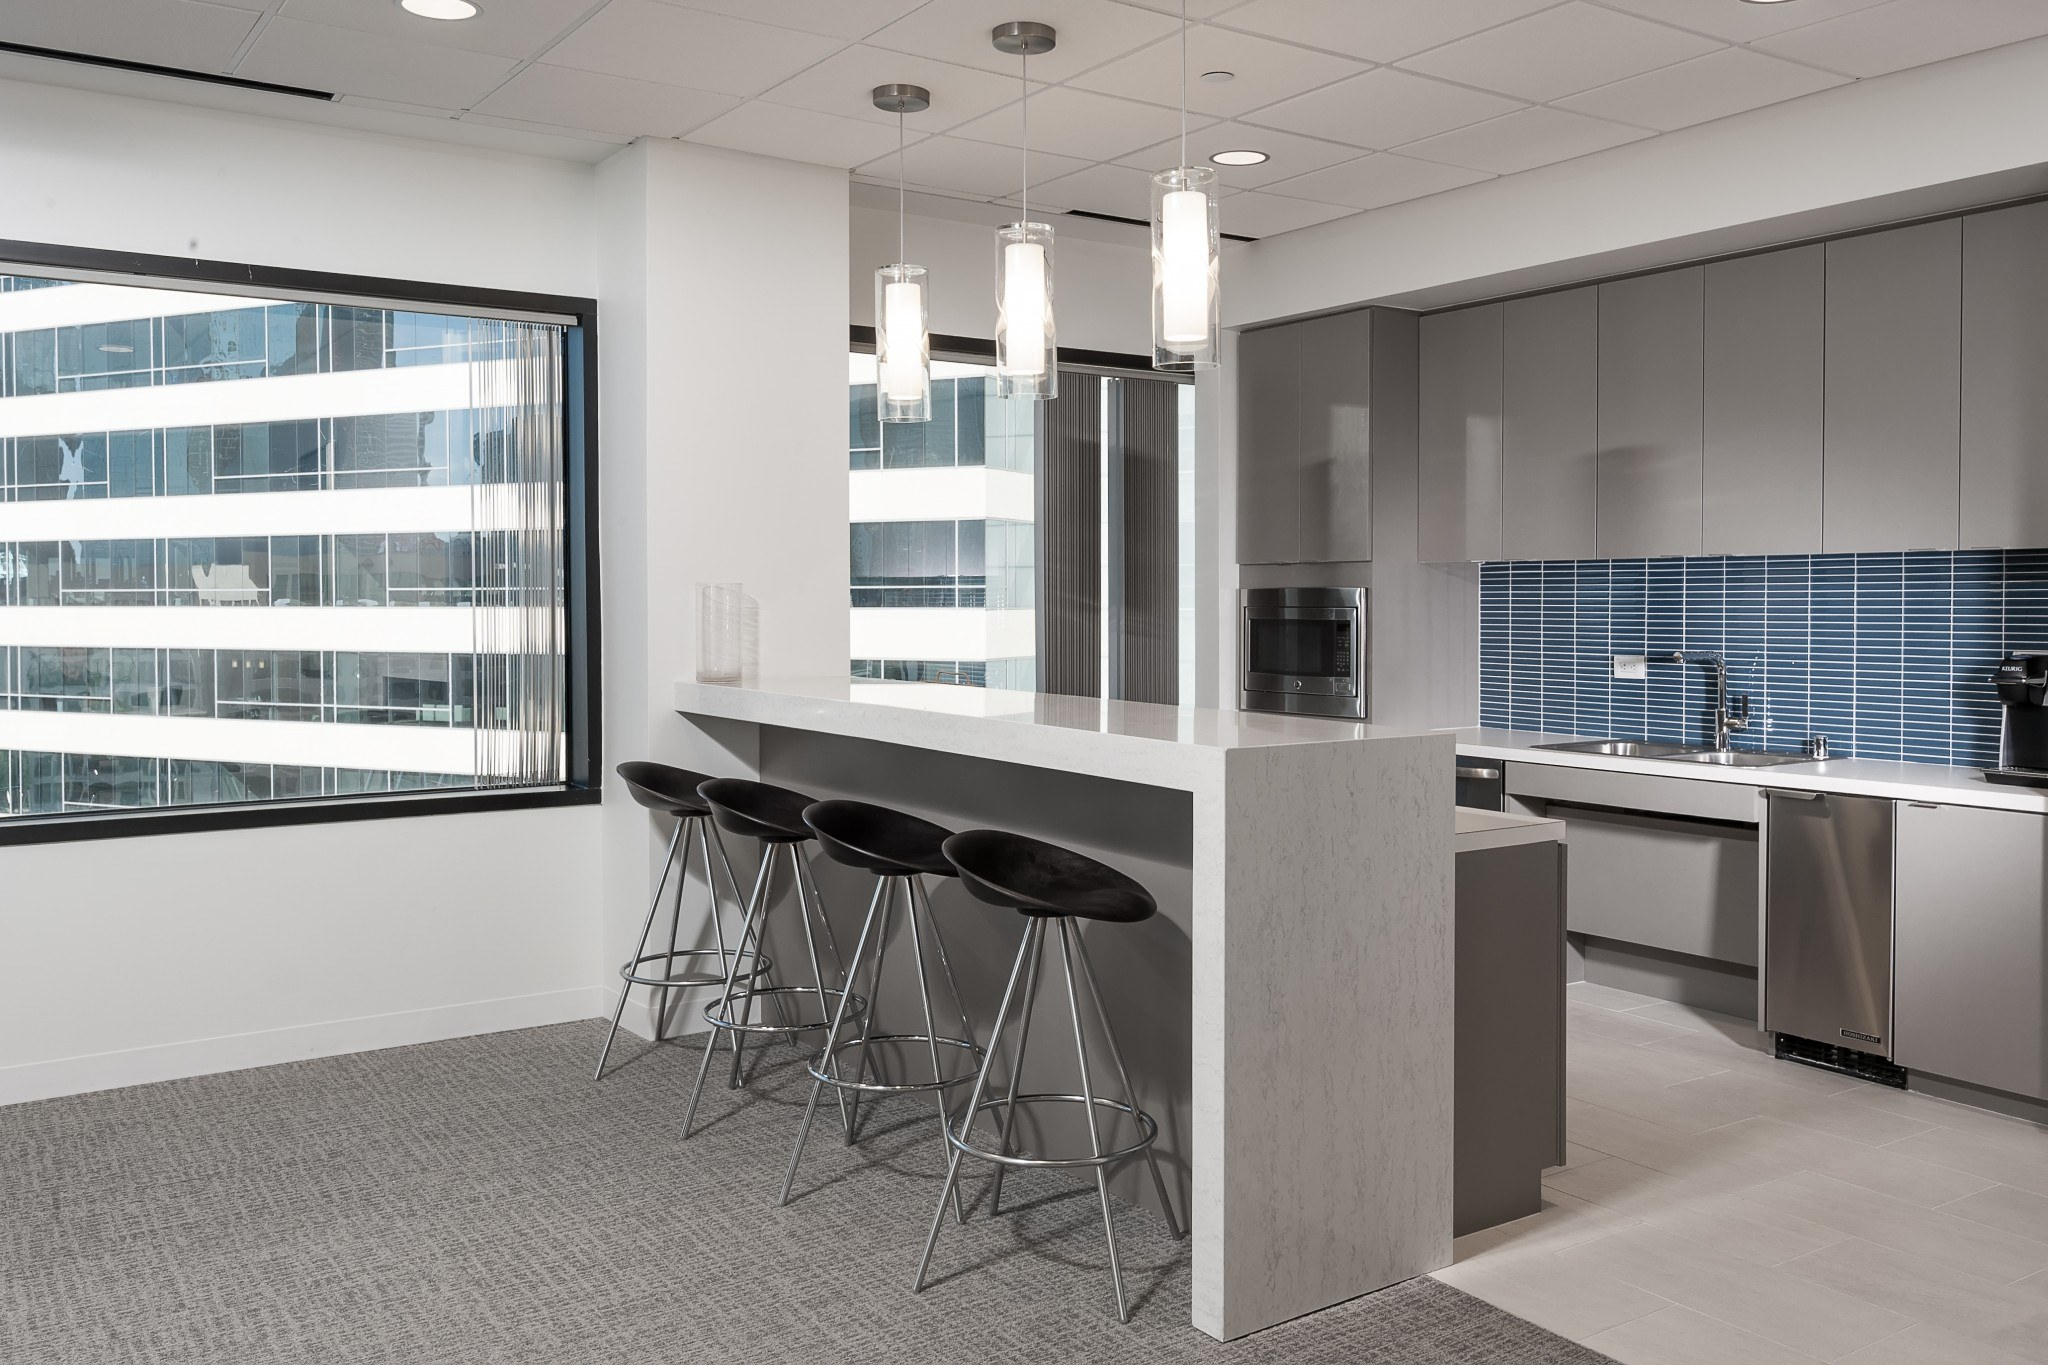 Nix, Patterson and Roach - Gordon Highlander - High Rise Office Project - Breakroom